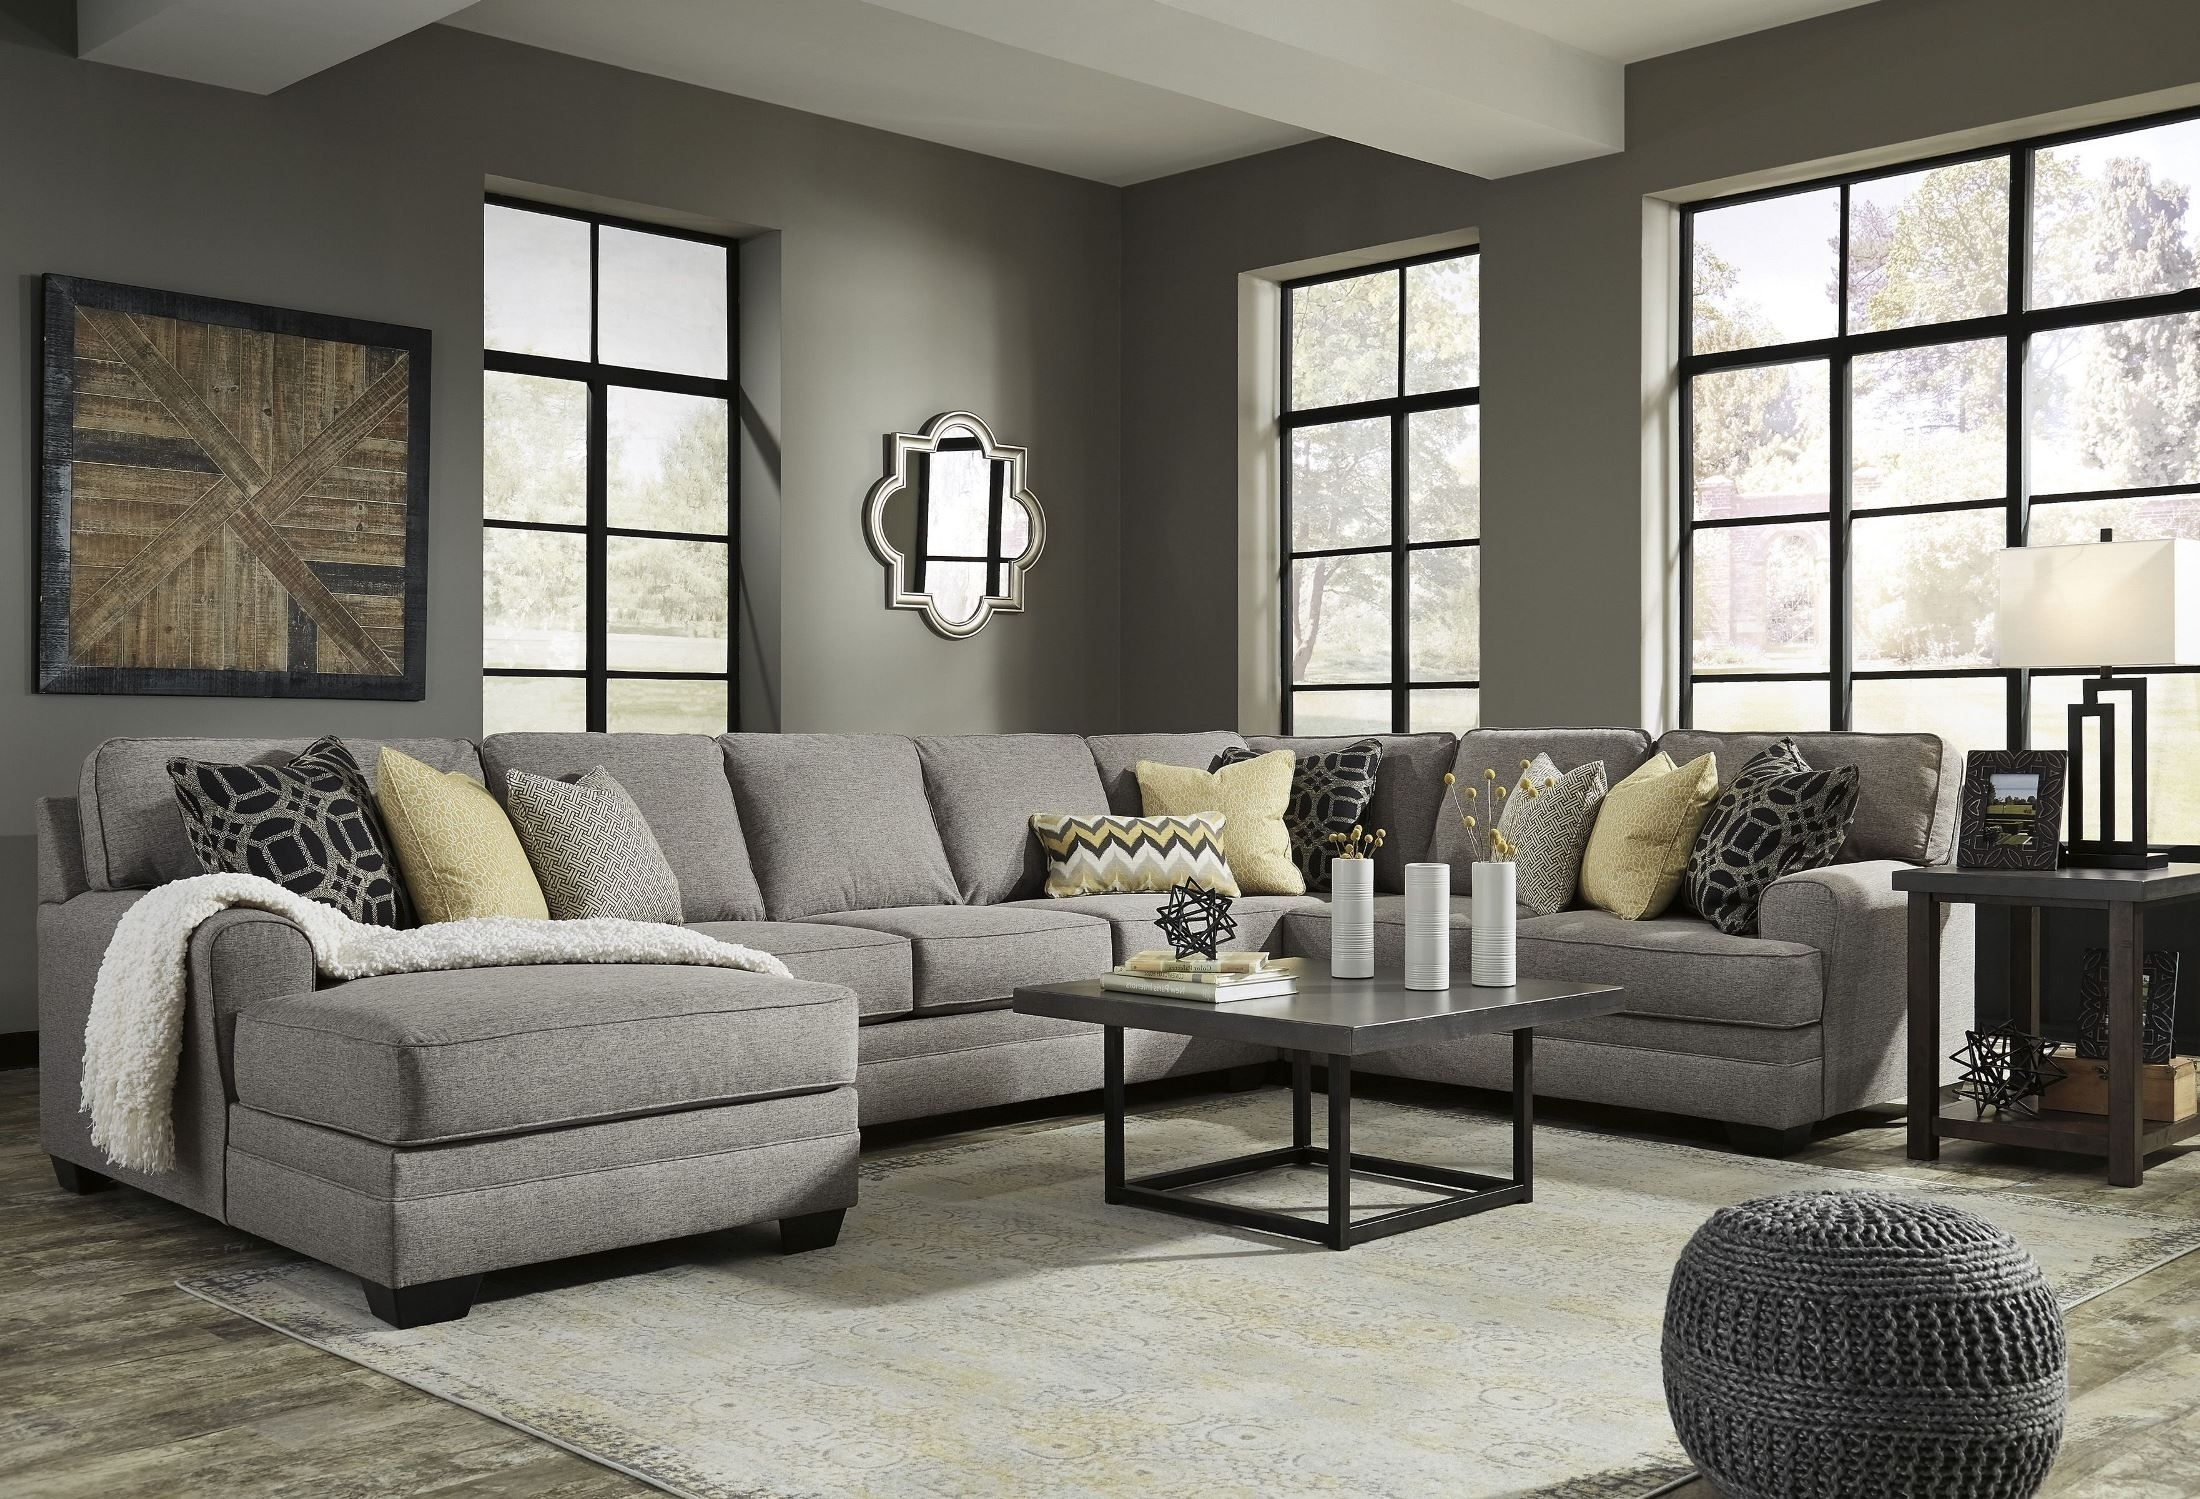 Large Chaise Sofas | Baci Living Room Throughout Delano 2 Piece Sectionals With Raf Oversized Chaise (Image 20 of 25)